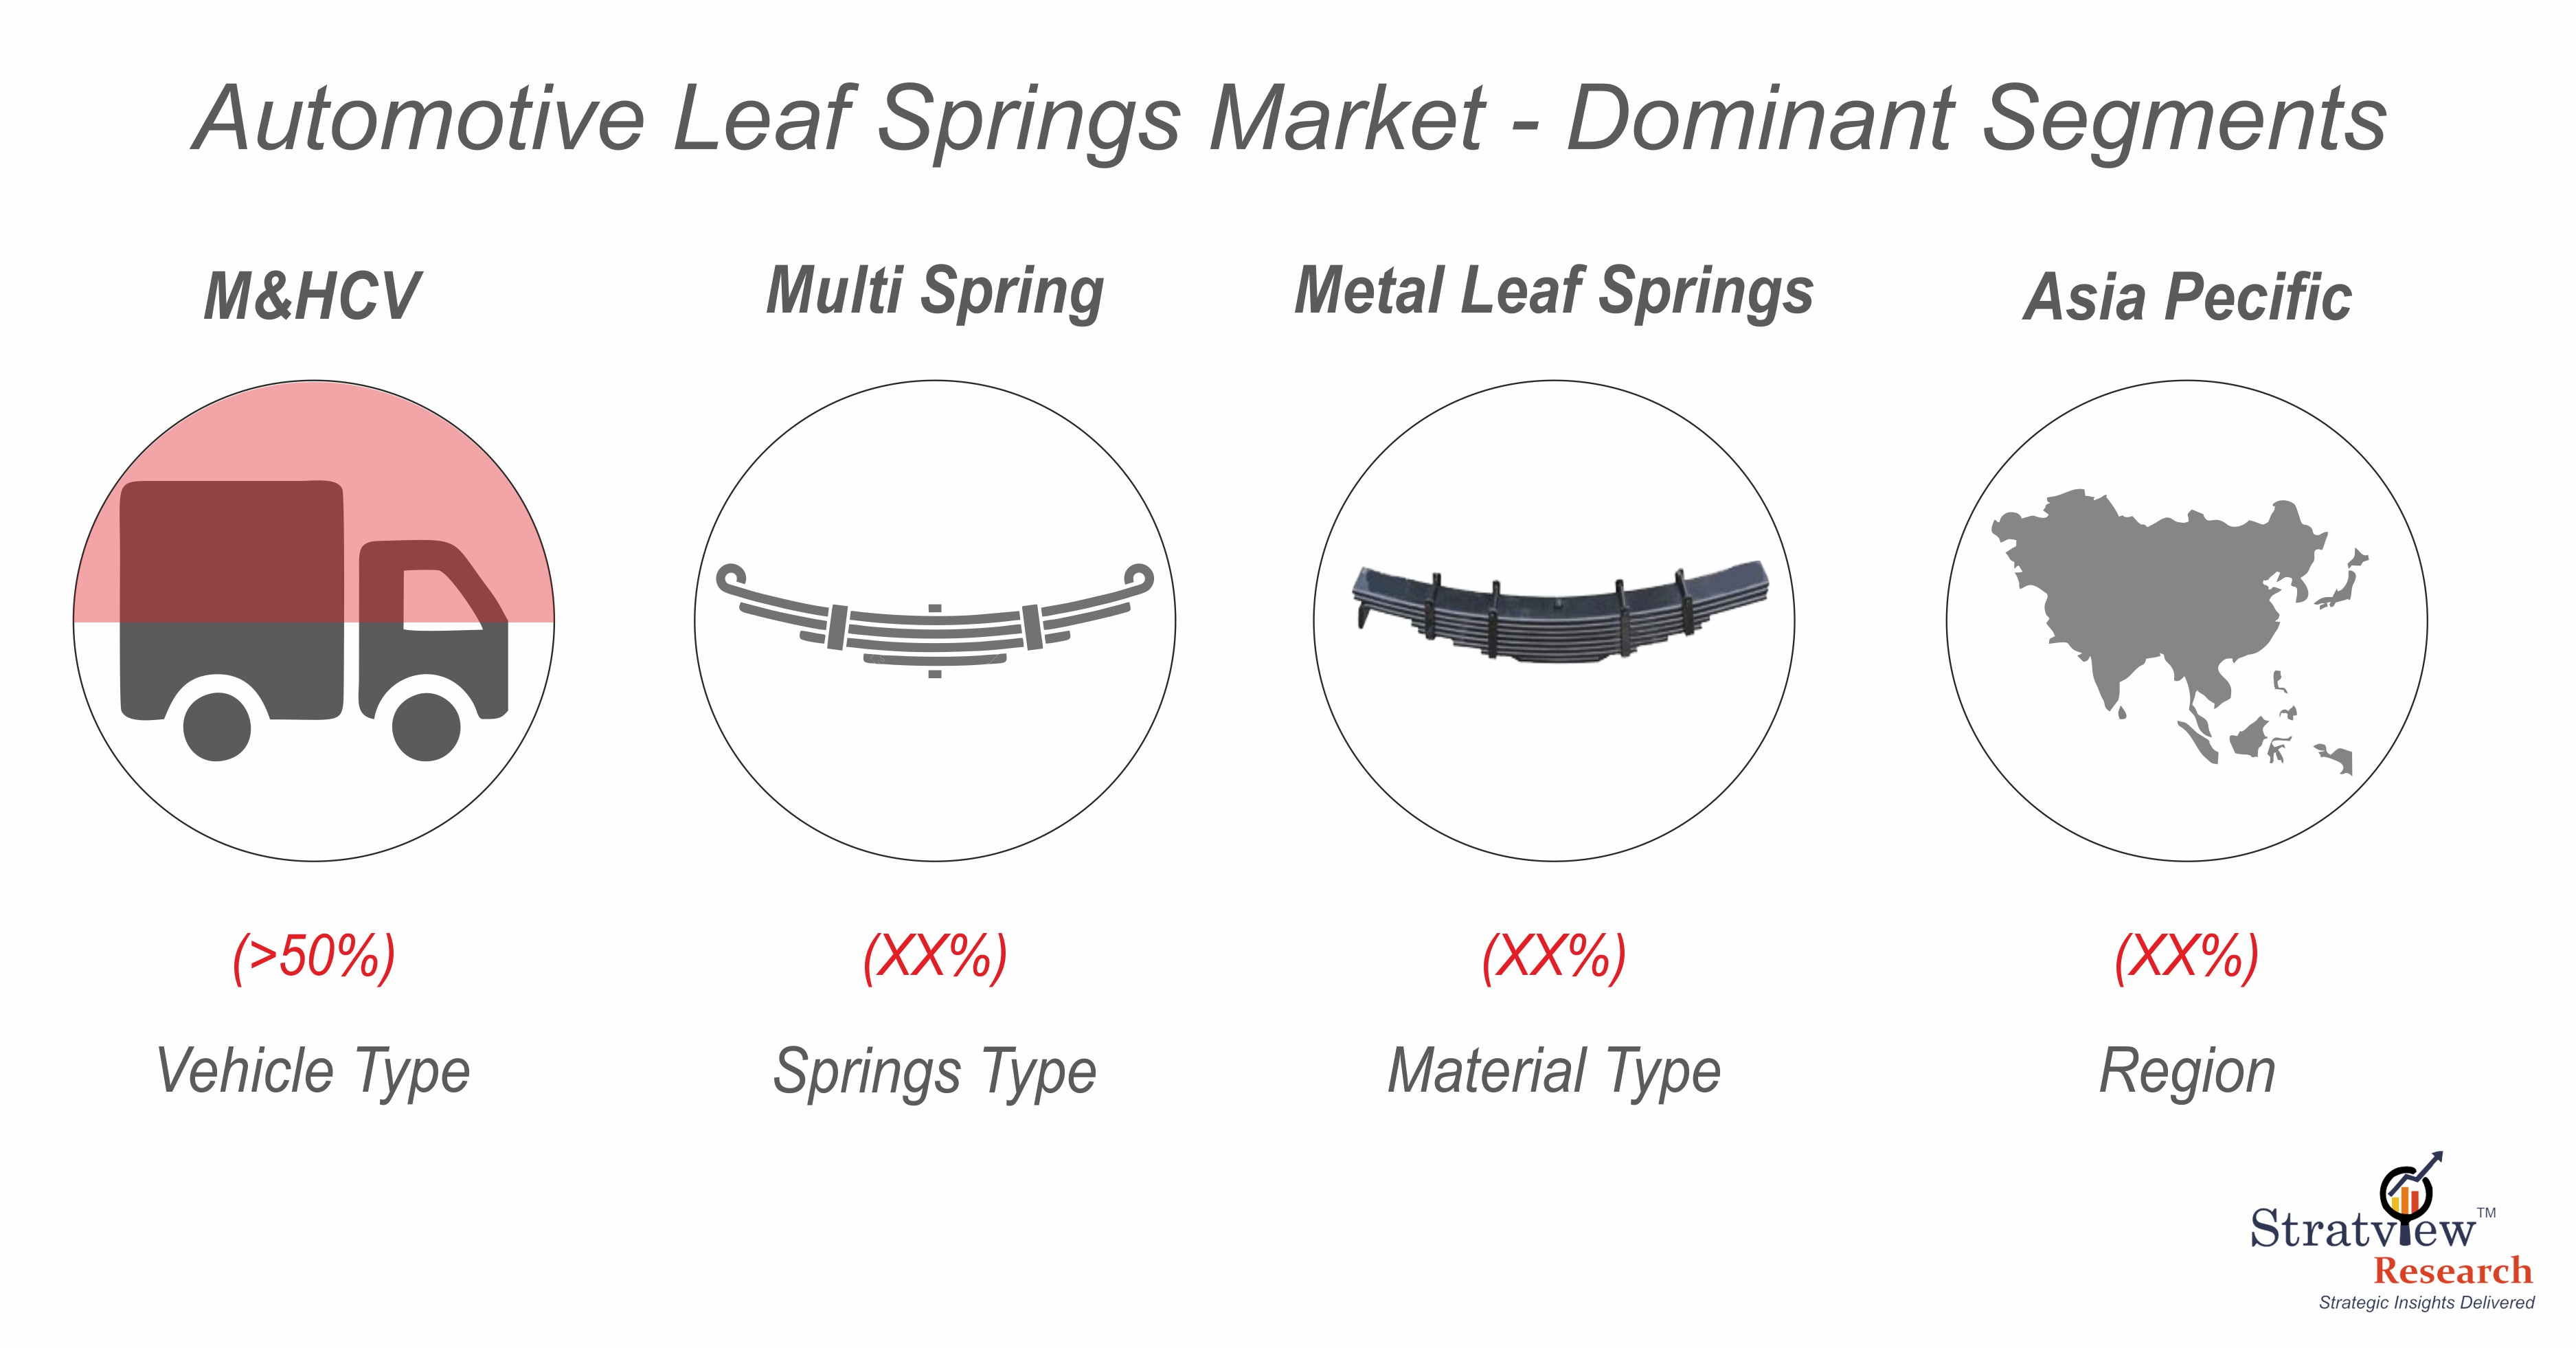 Automotive Leaf Spring Market Segmentation.jpg